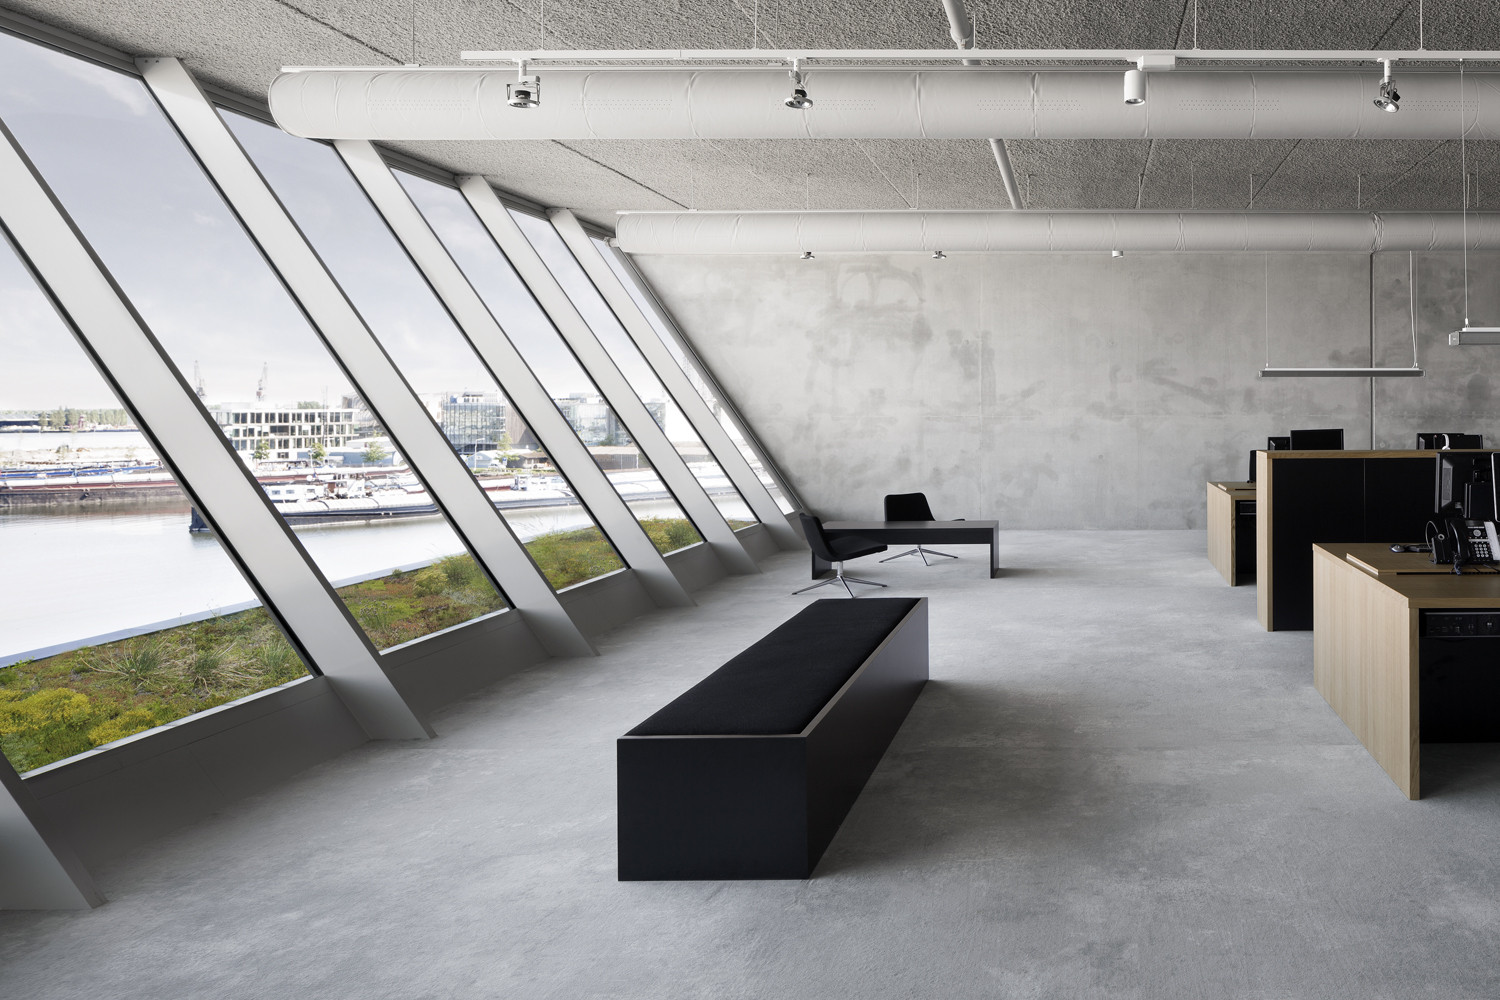 Office 05 i29 interior architects VMX Architects ArchDaily